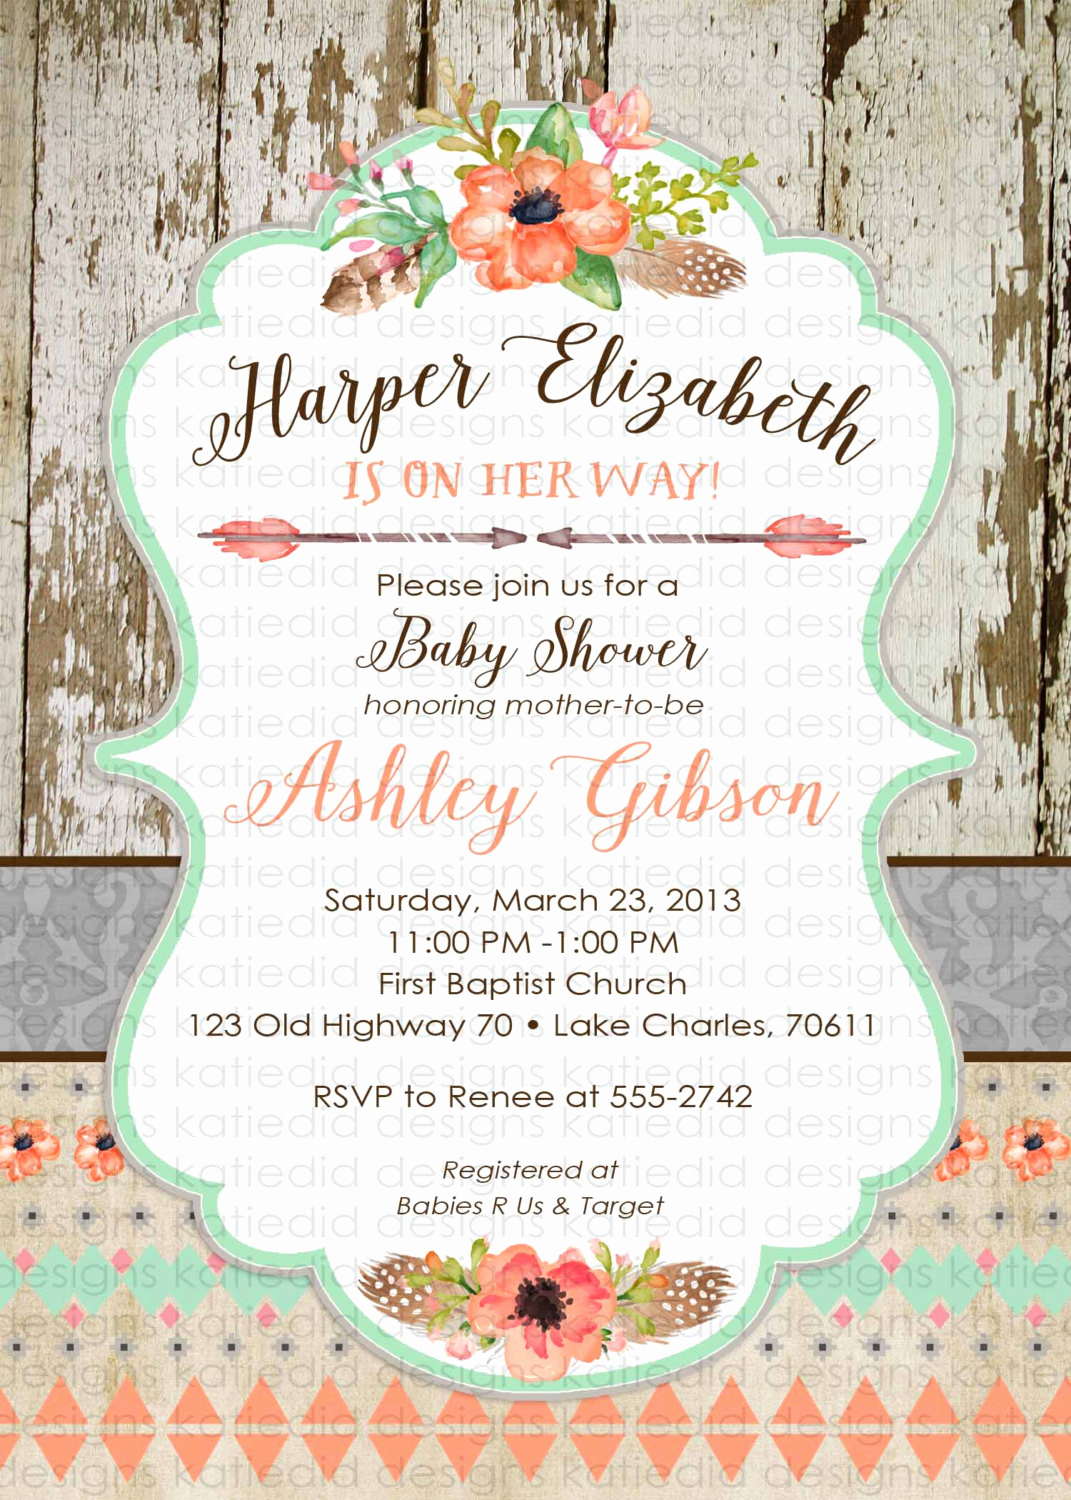 Boho Baby Shower Invitation Unique Boho Baby Shower Invitation Tribal Aztec Bridal Shower